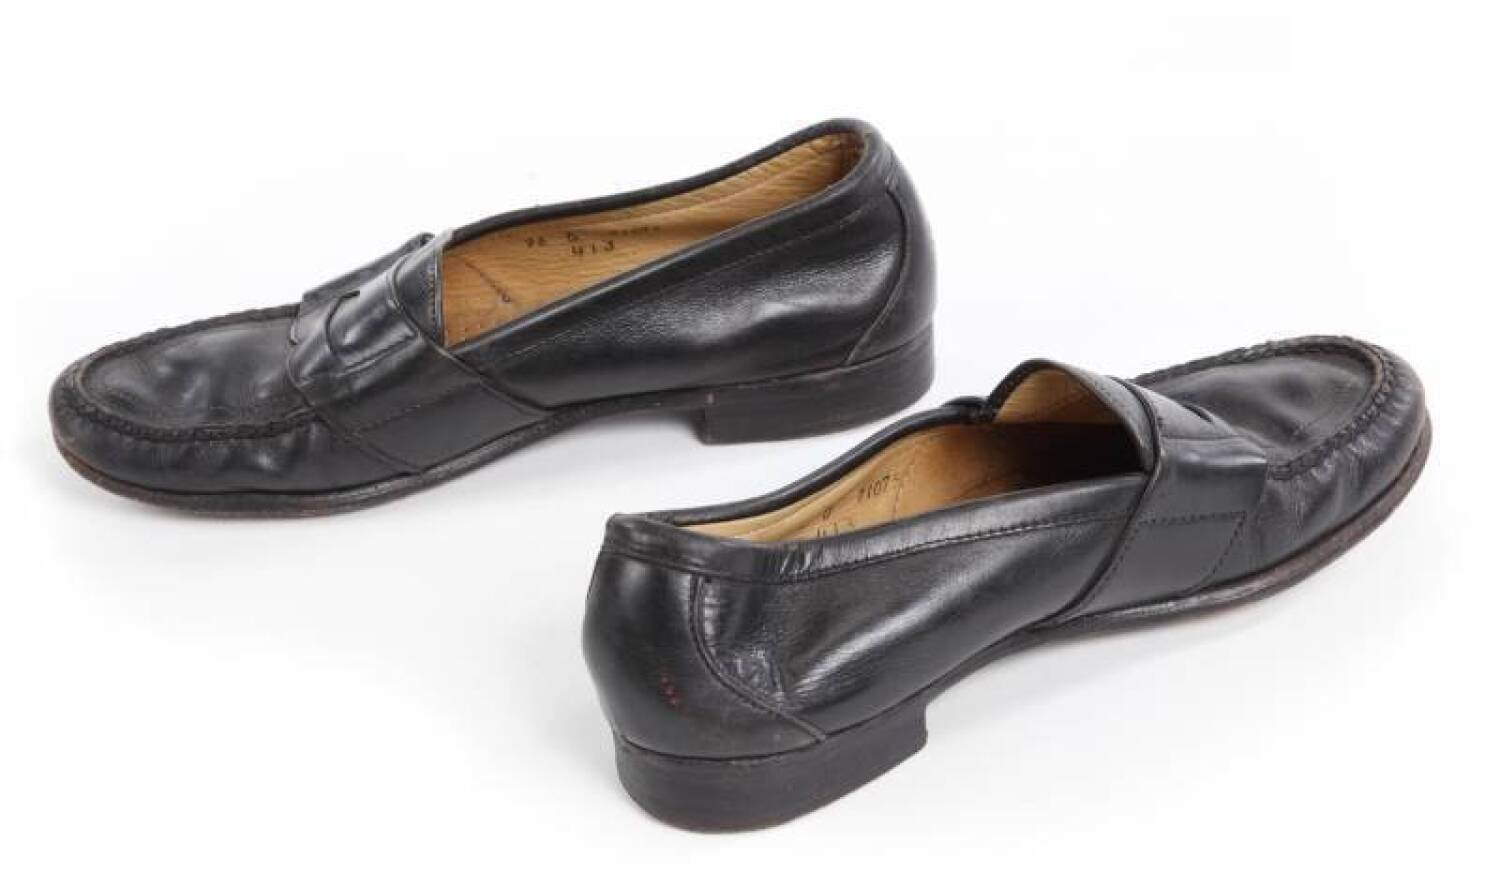 Michael Jackson Signed Loafers Current Price 8000